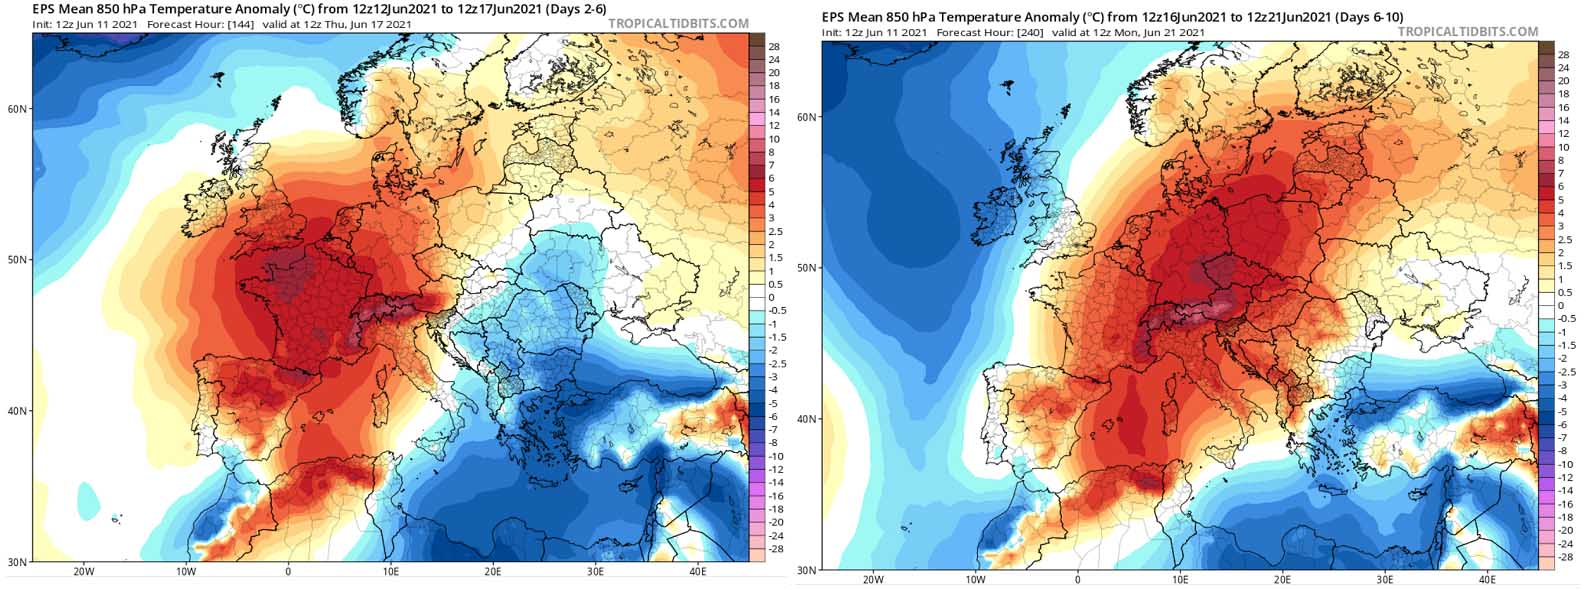 first-significant-heatwave-2021-europe-weekly-anomaly